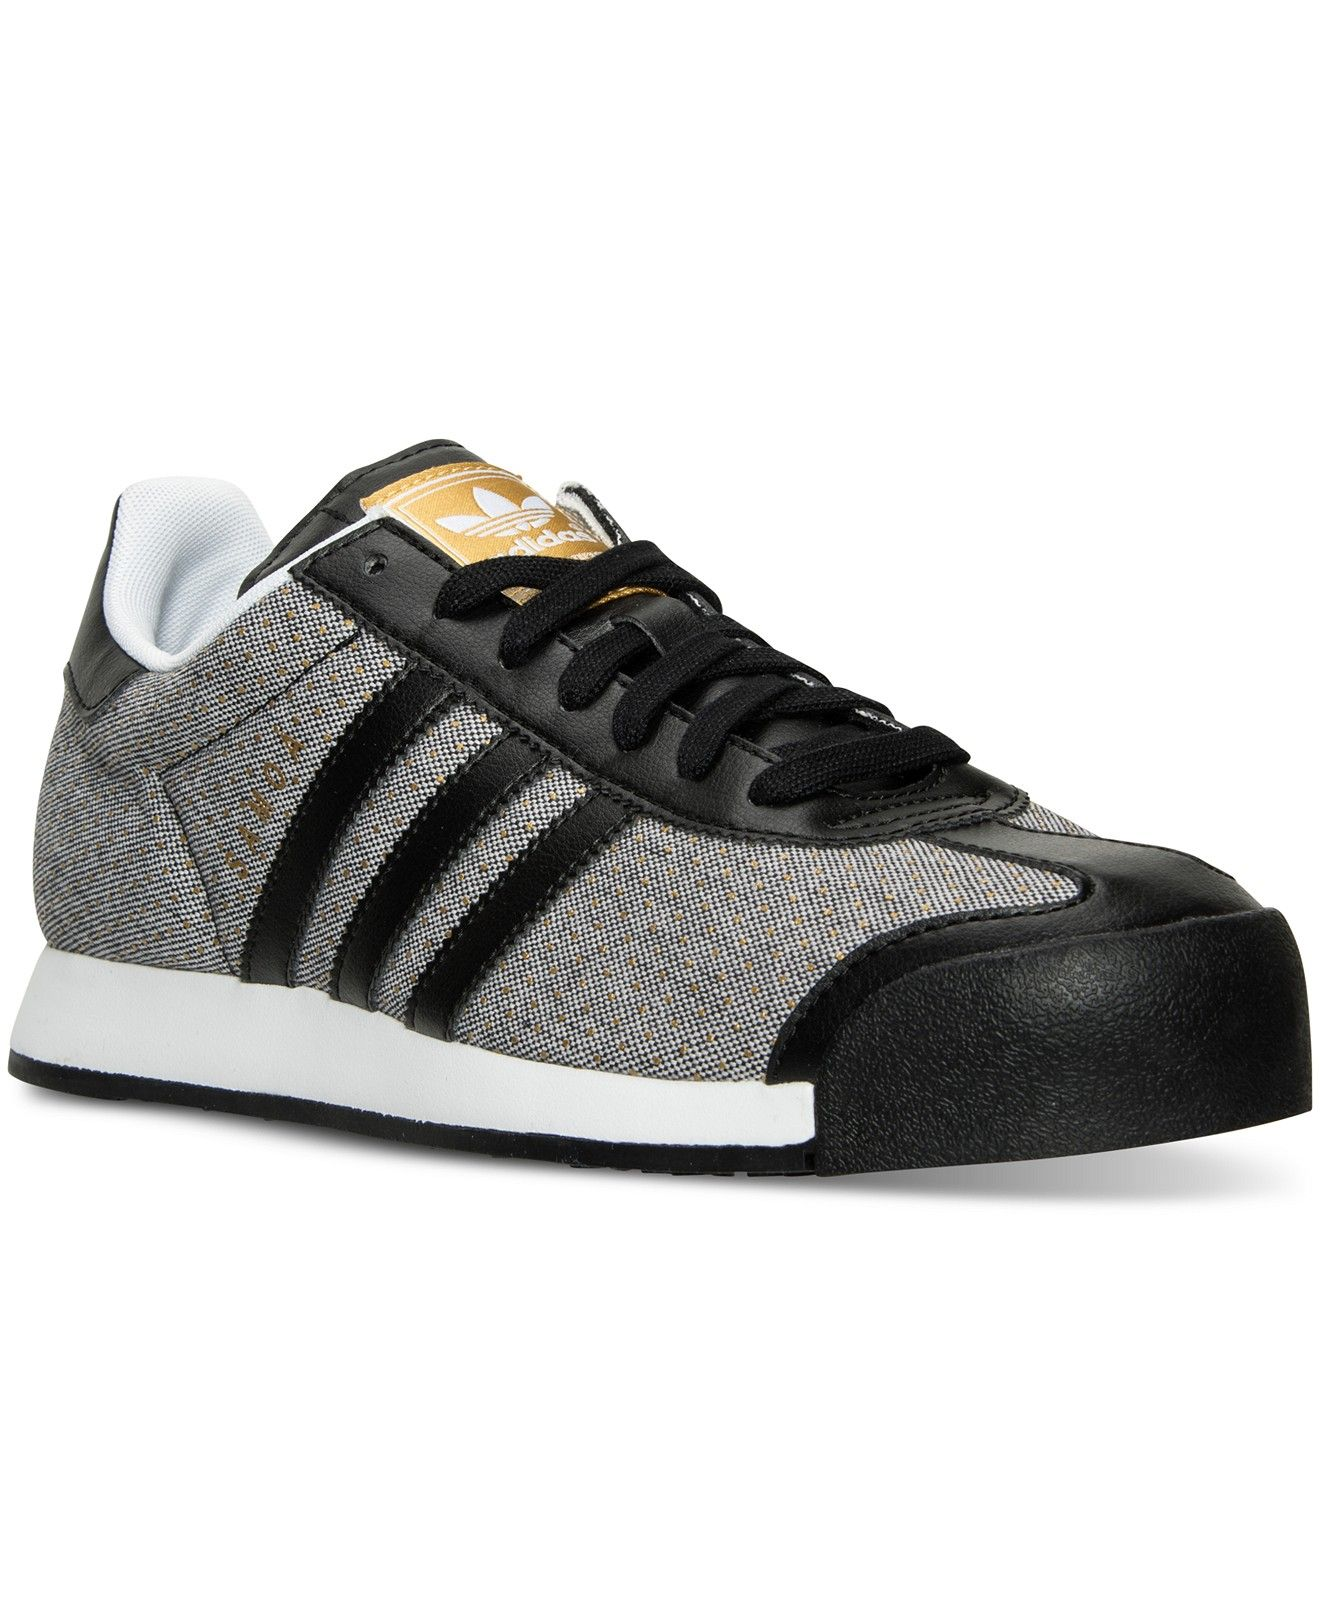 0a7870e2c adidas Women s Samoa Casual Sneakers from Finish Line - Finish Line Athletic  Shoes - Shoes - Macy s